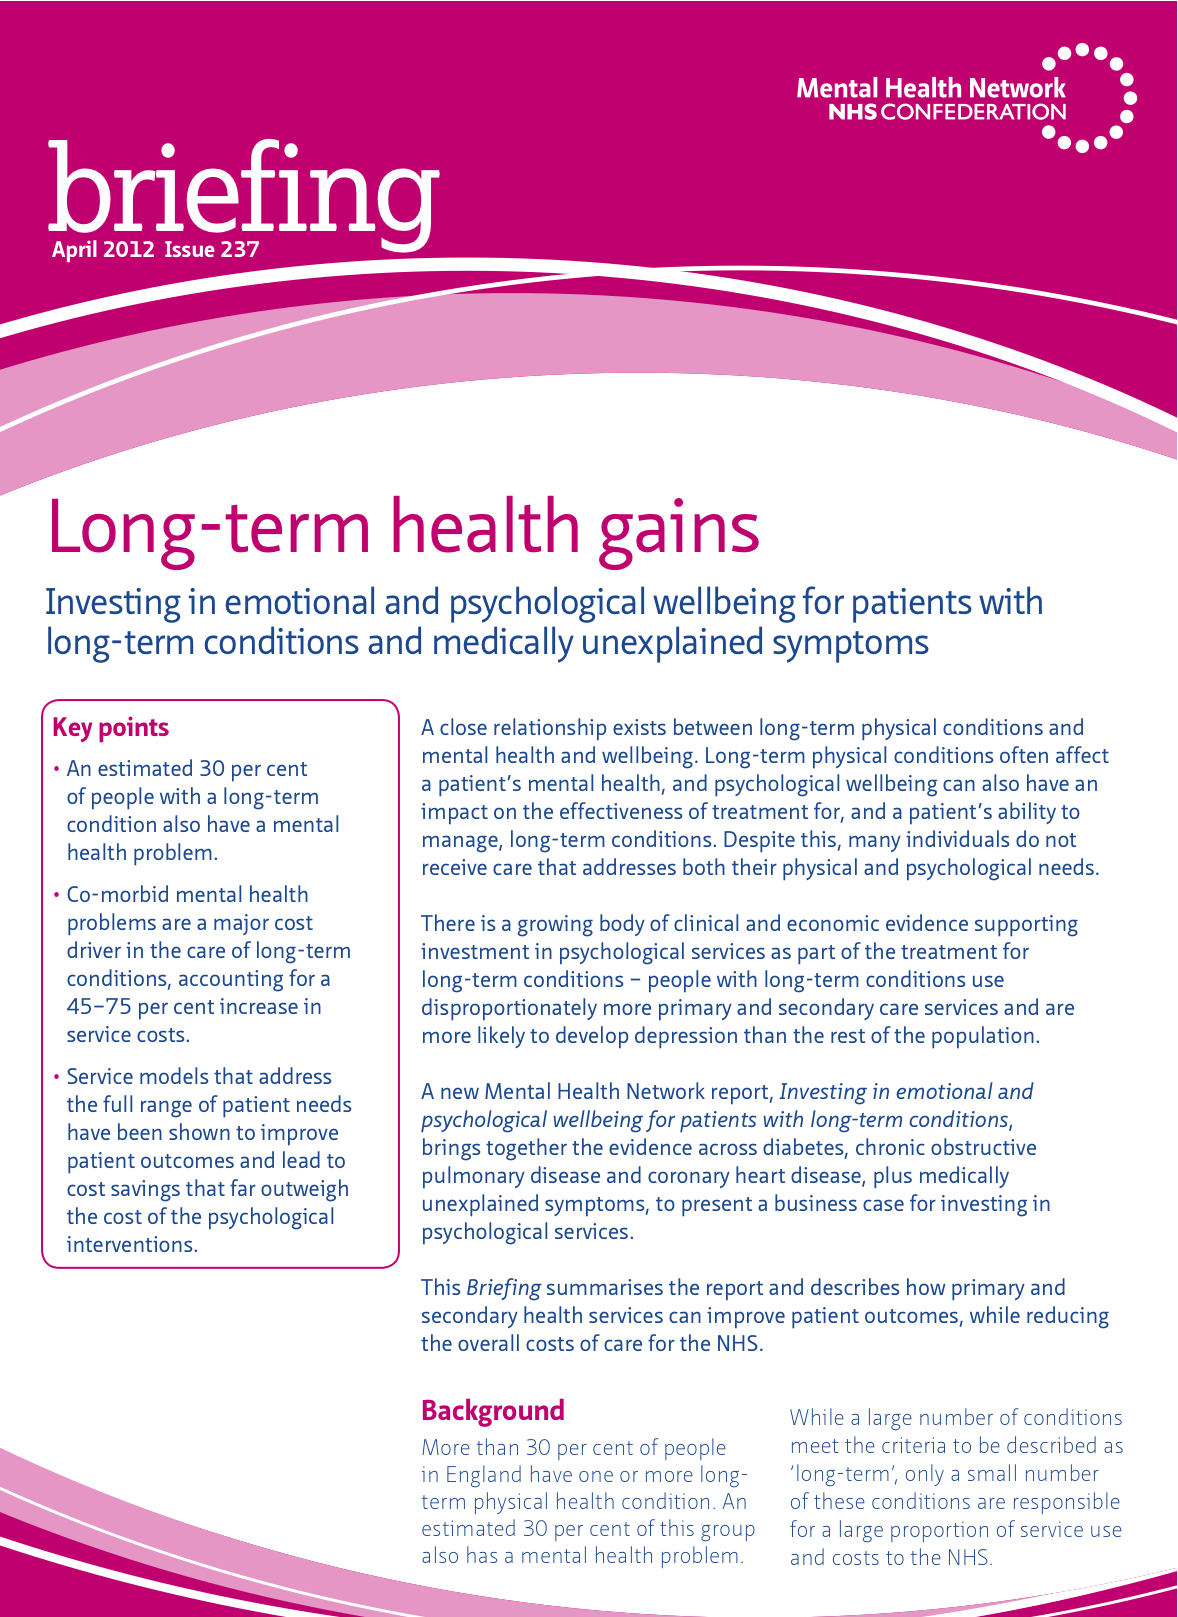 Long-term health gains